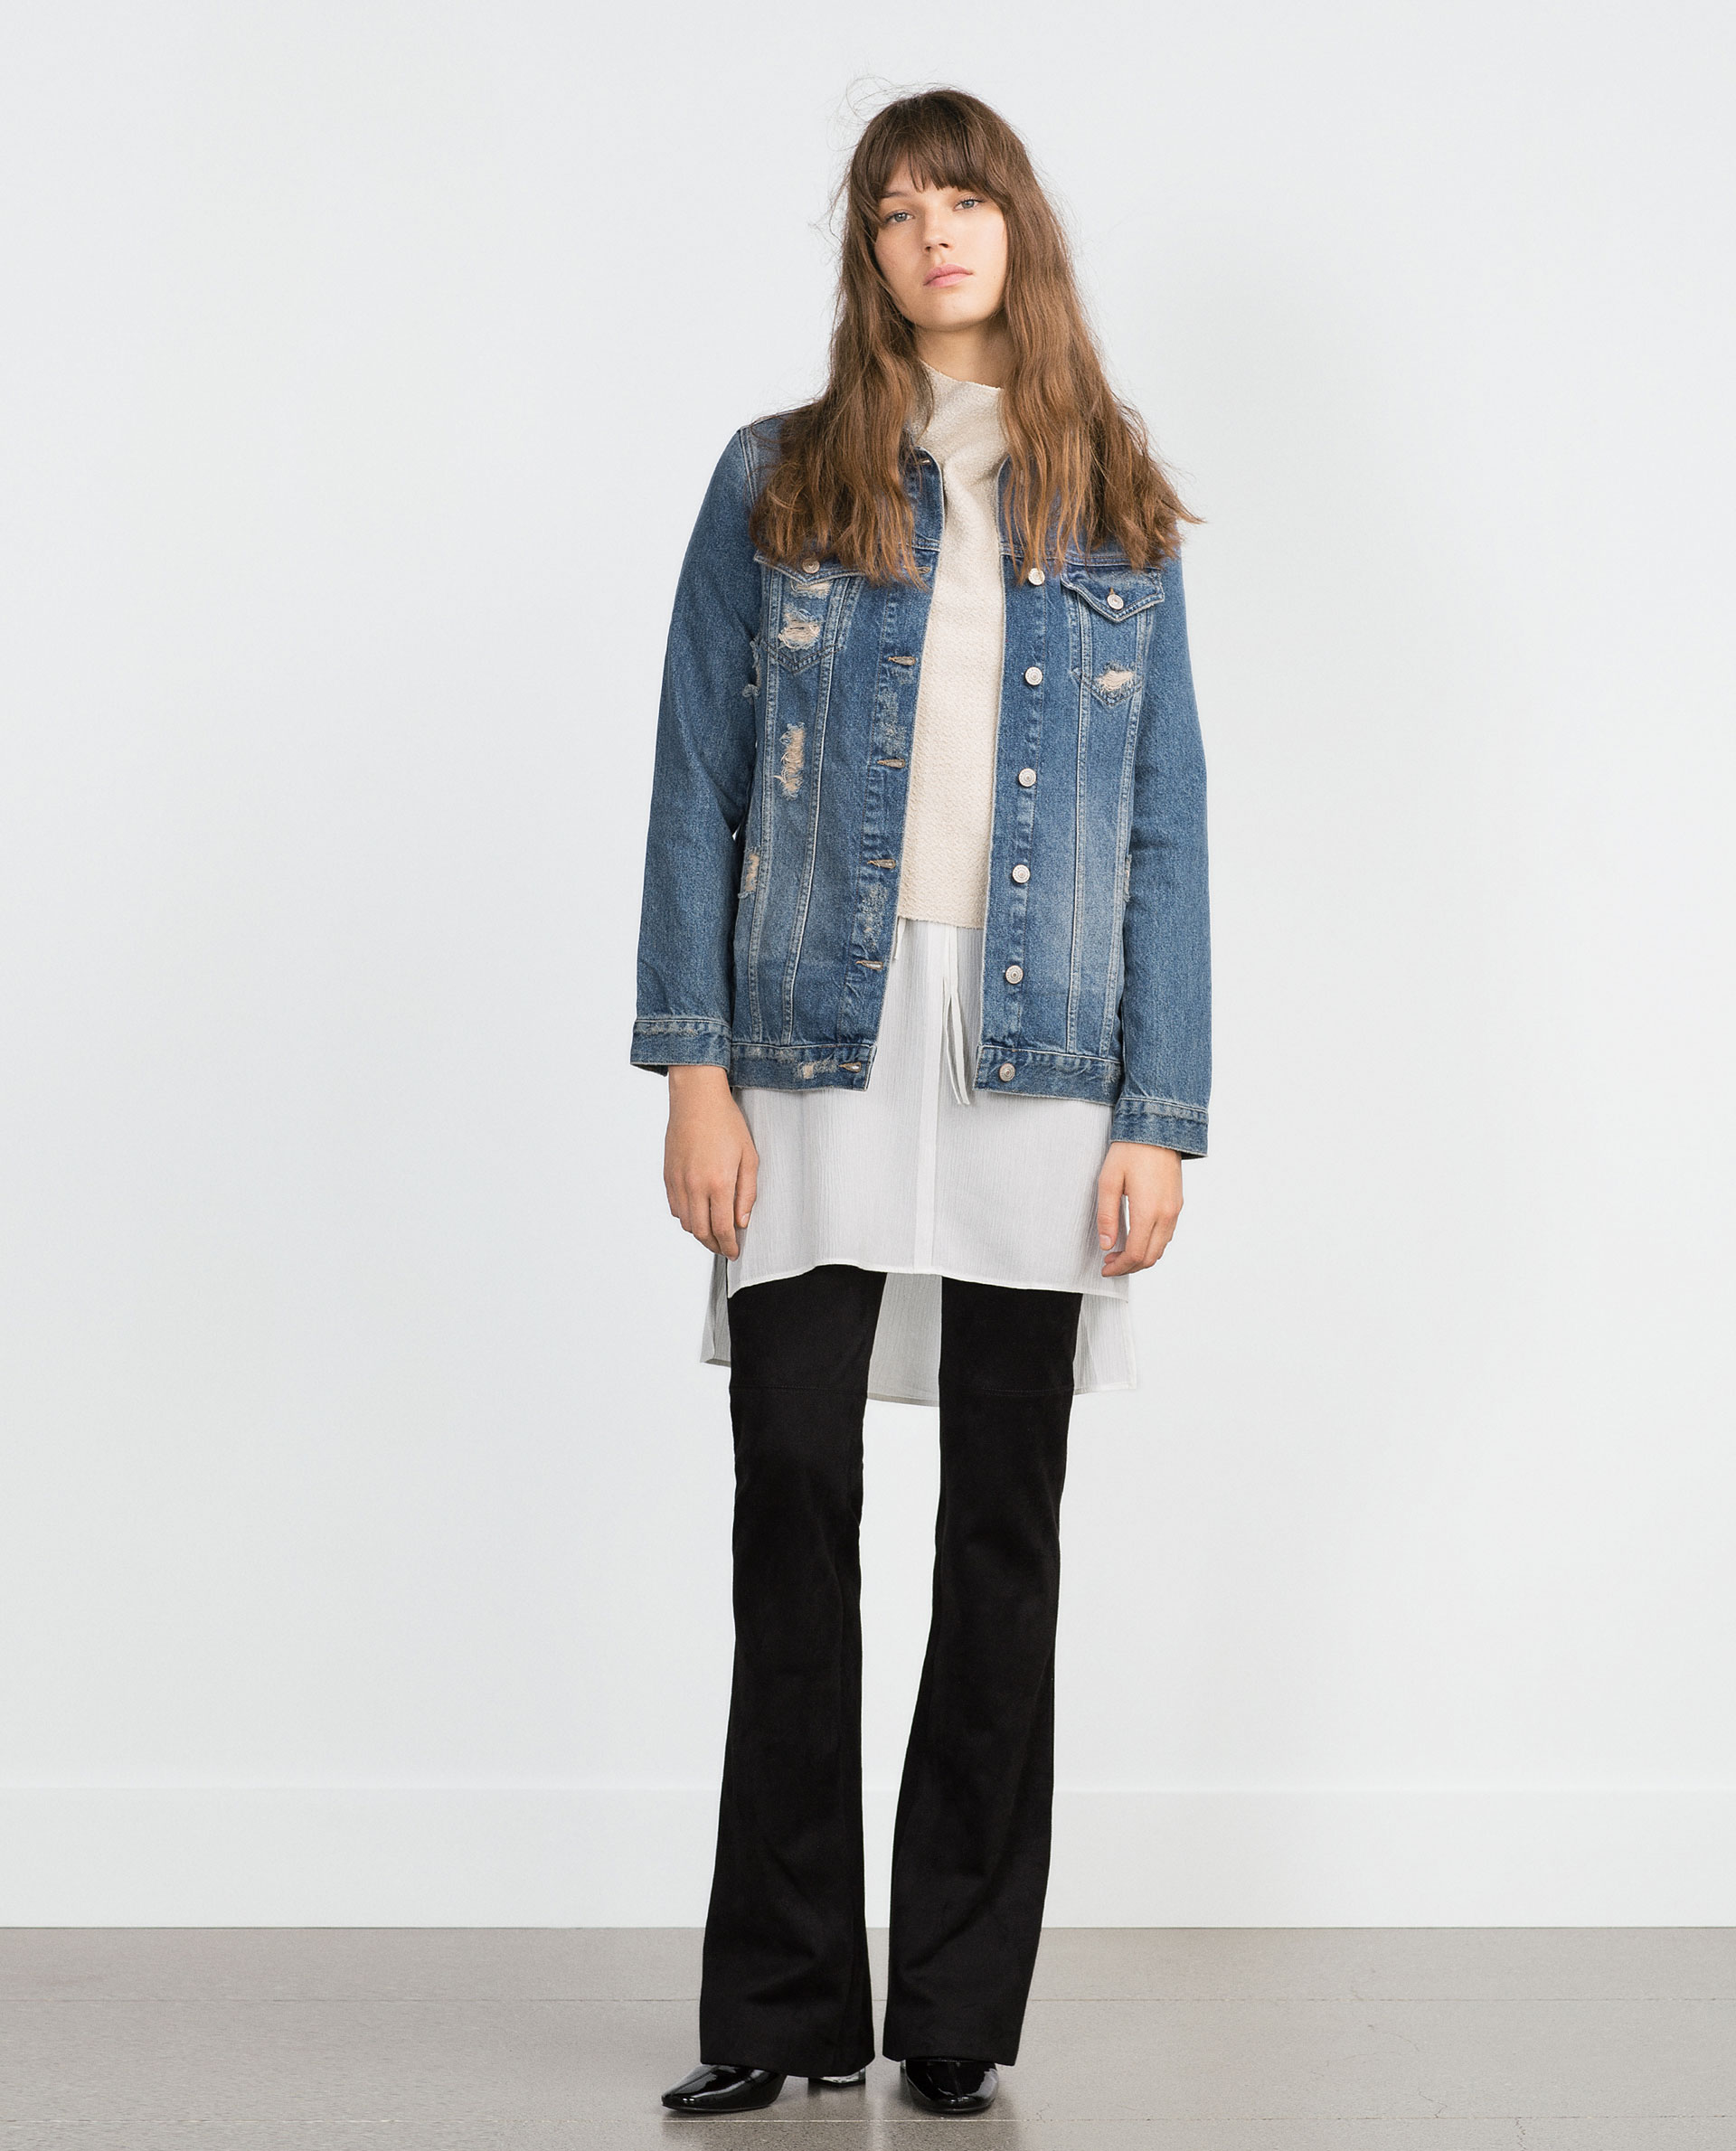 JACKET - Jackets - WOMAN - SALE | ZARA United States